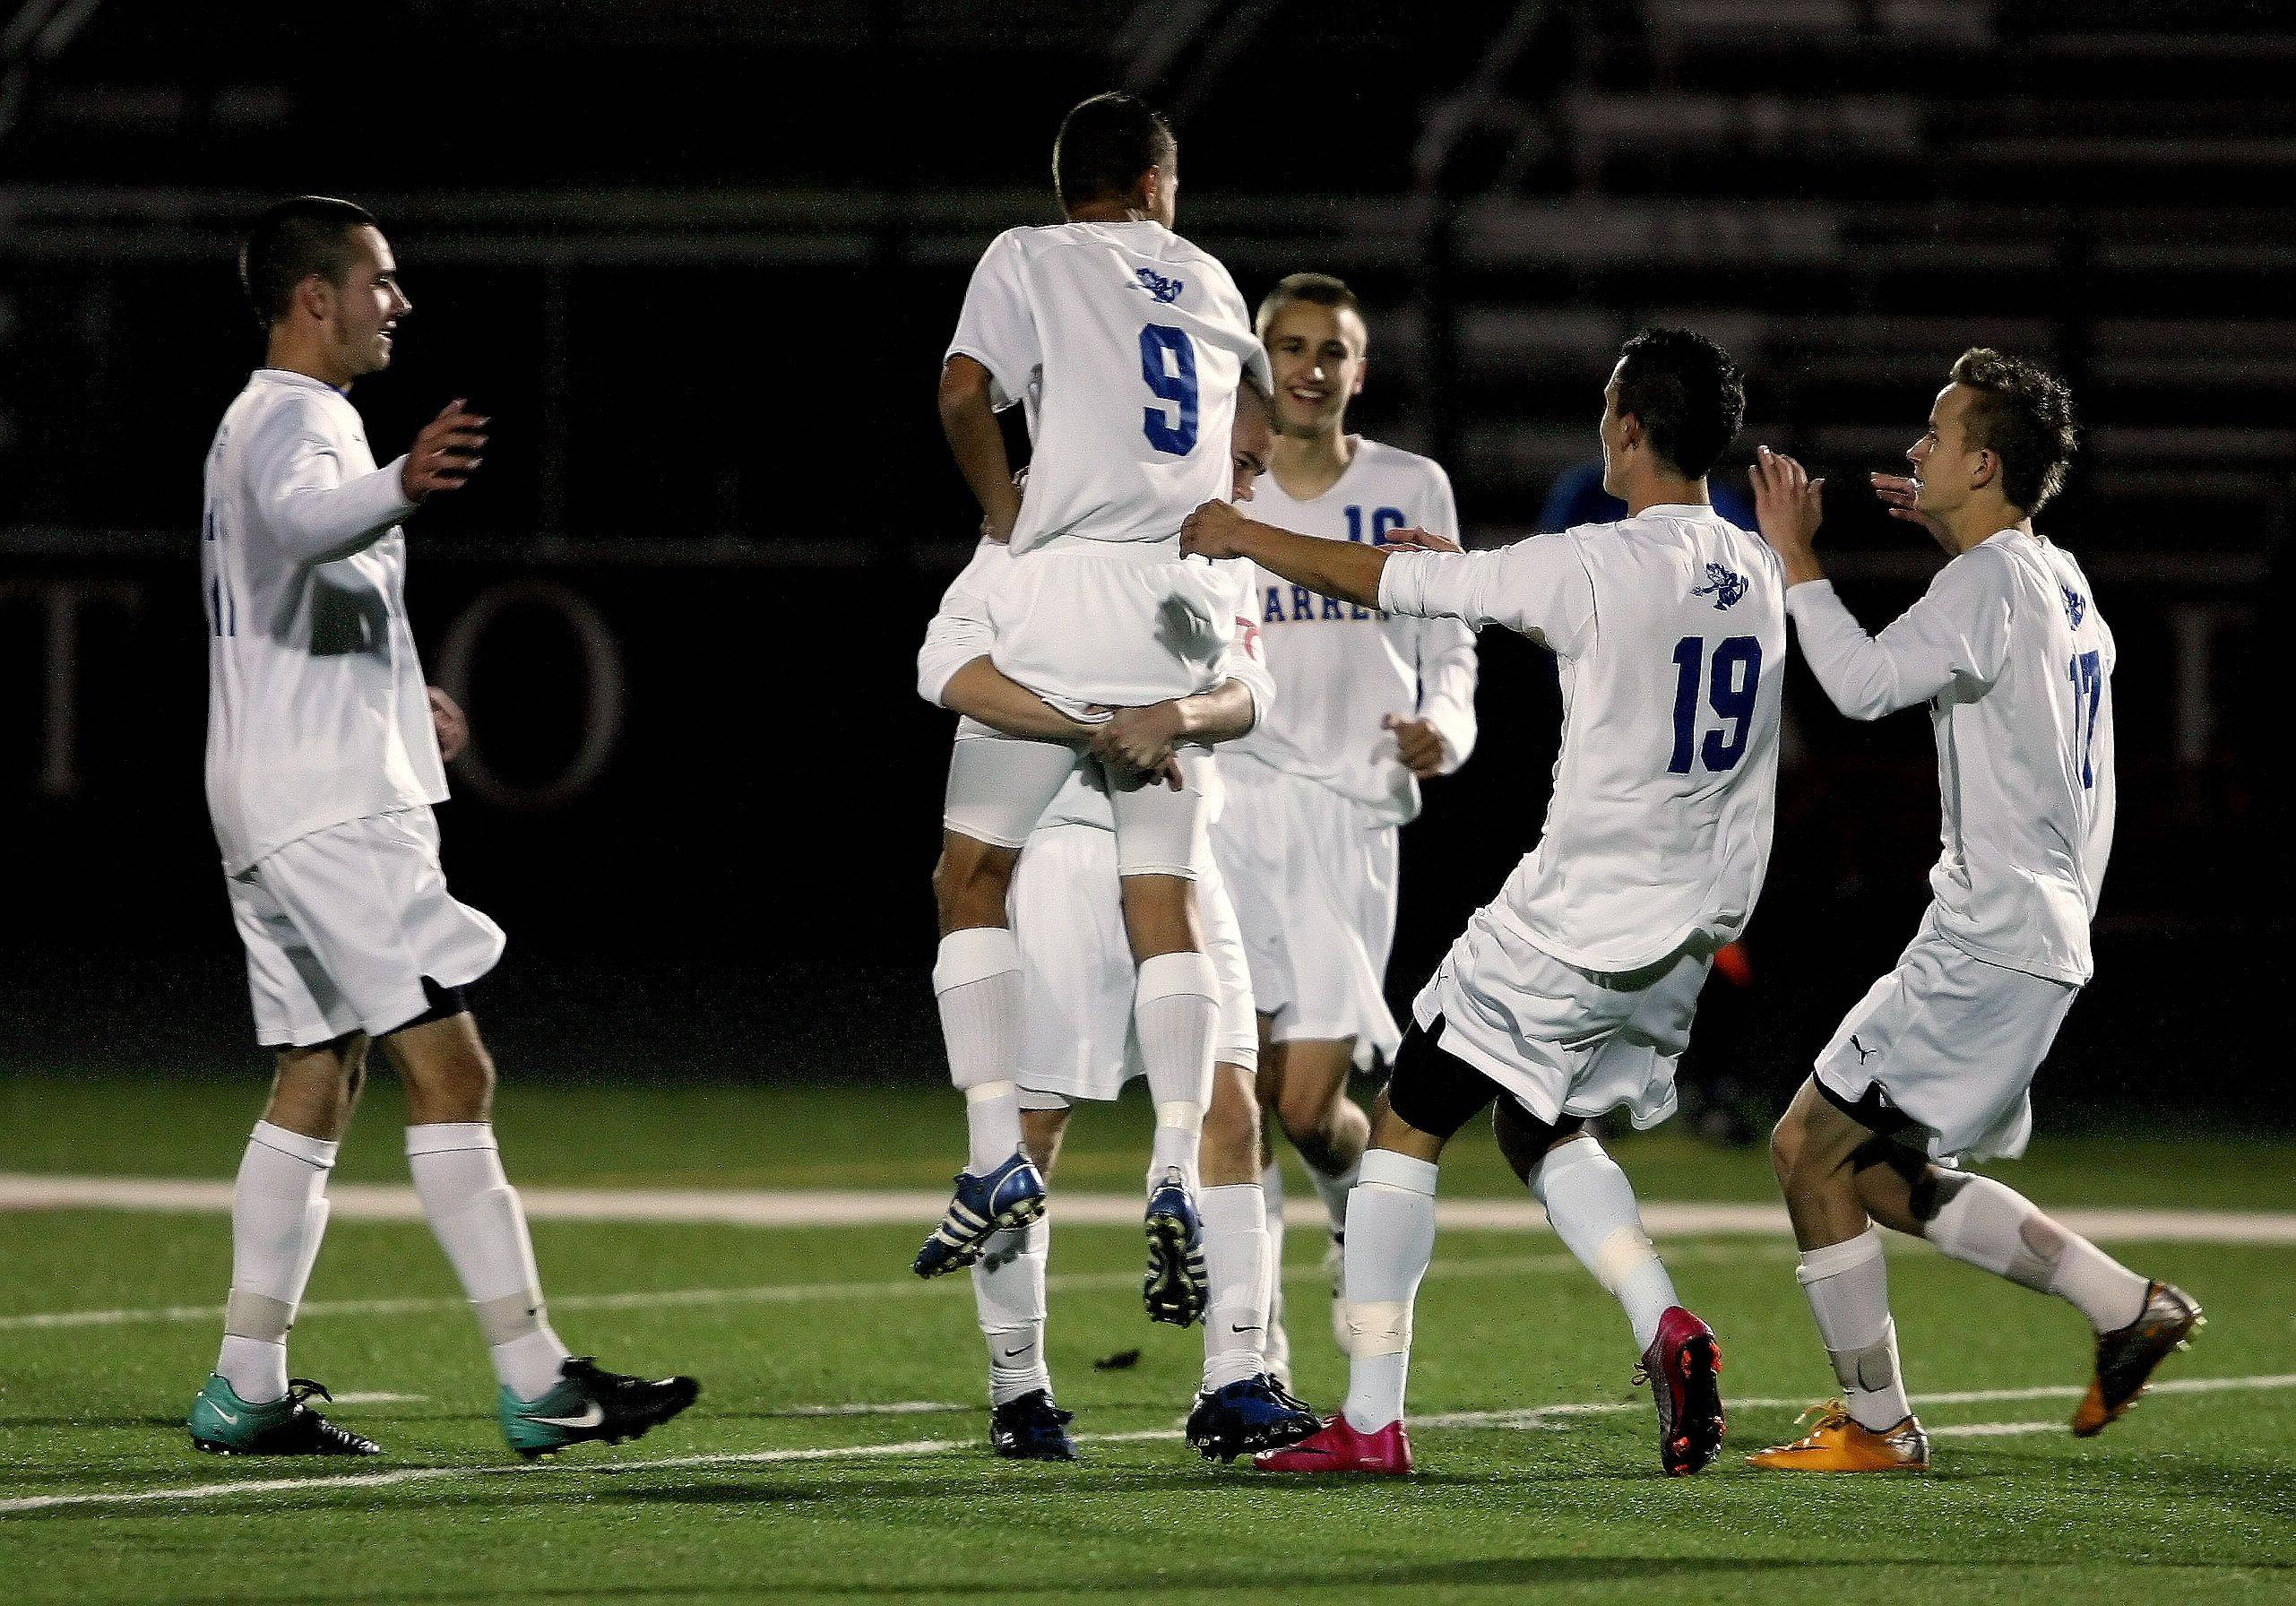 Warren teammates celebrate after Daniel Szczepanek scored the first goal of the game during the Class 3A Barrington boys soccer supersectional Tuesday featuring Warren against Schaumburg.